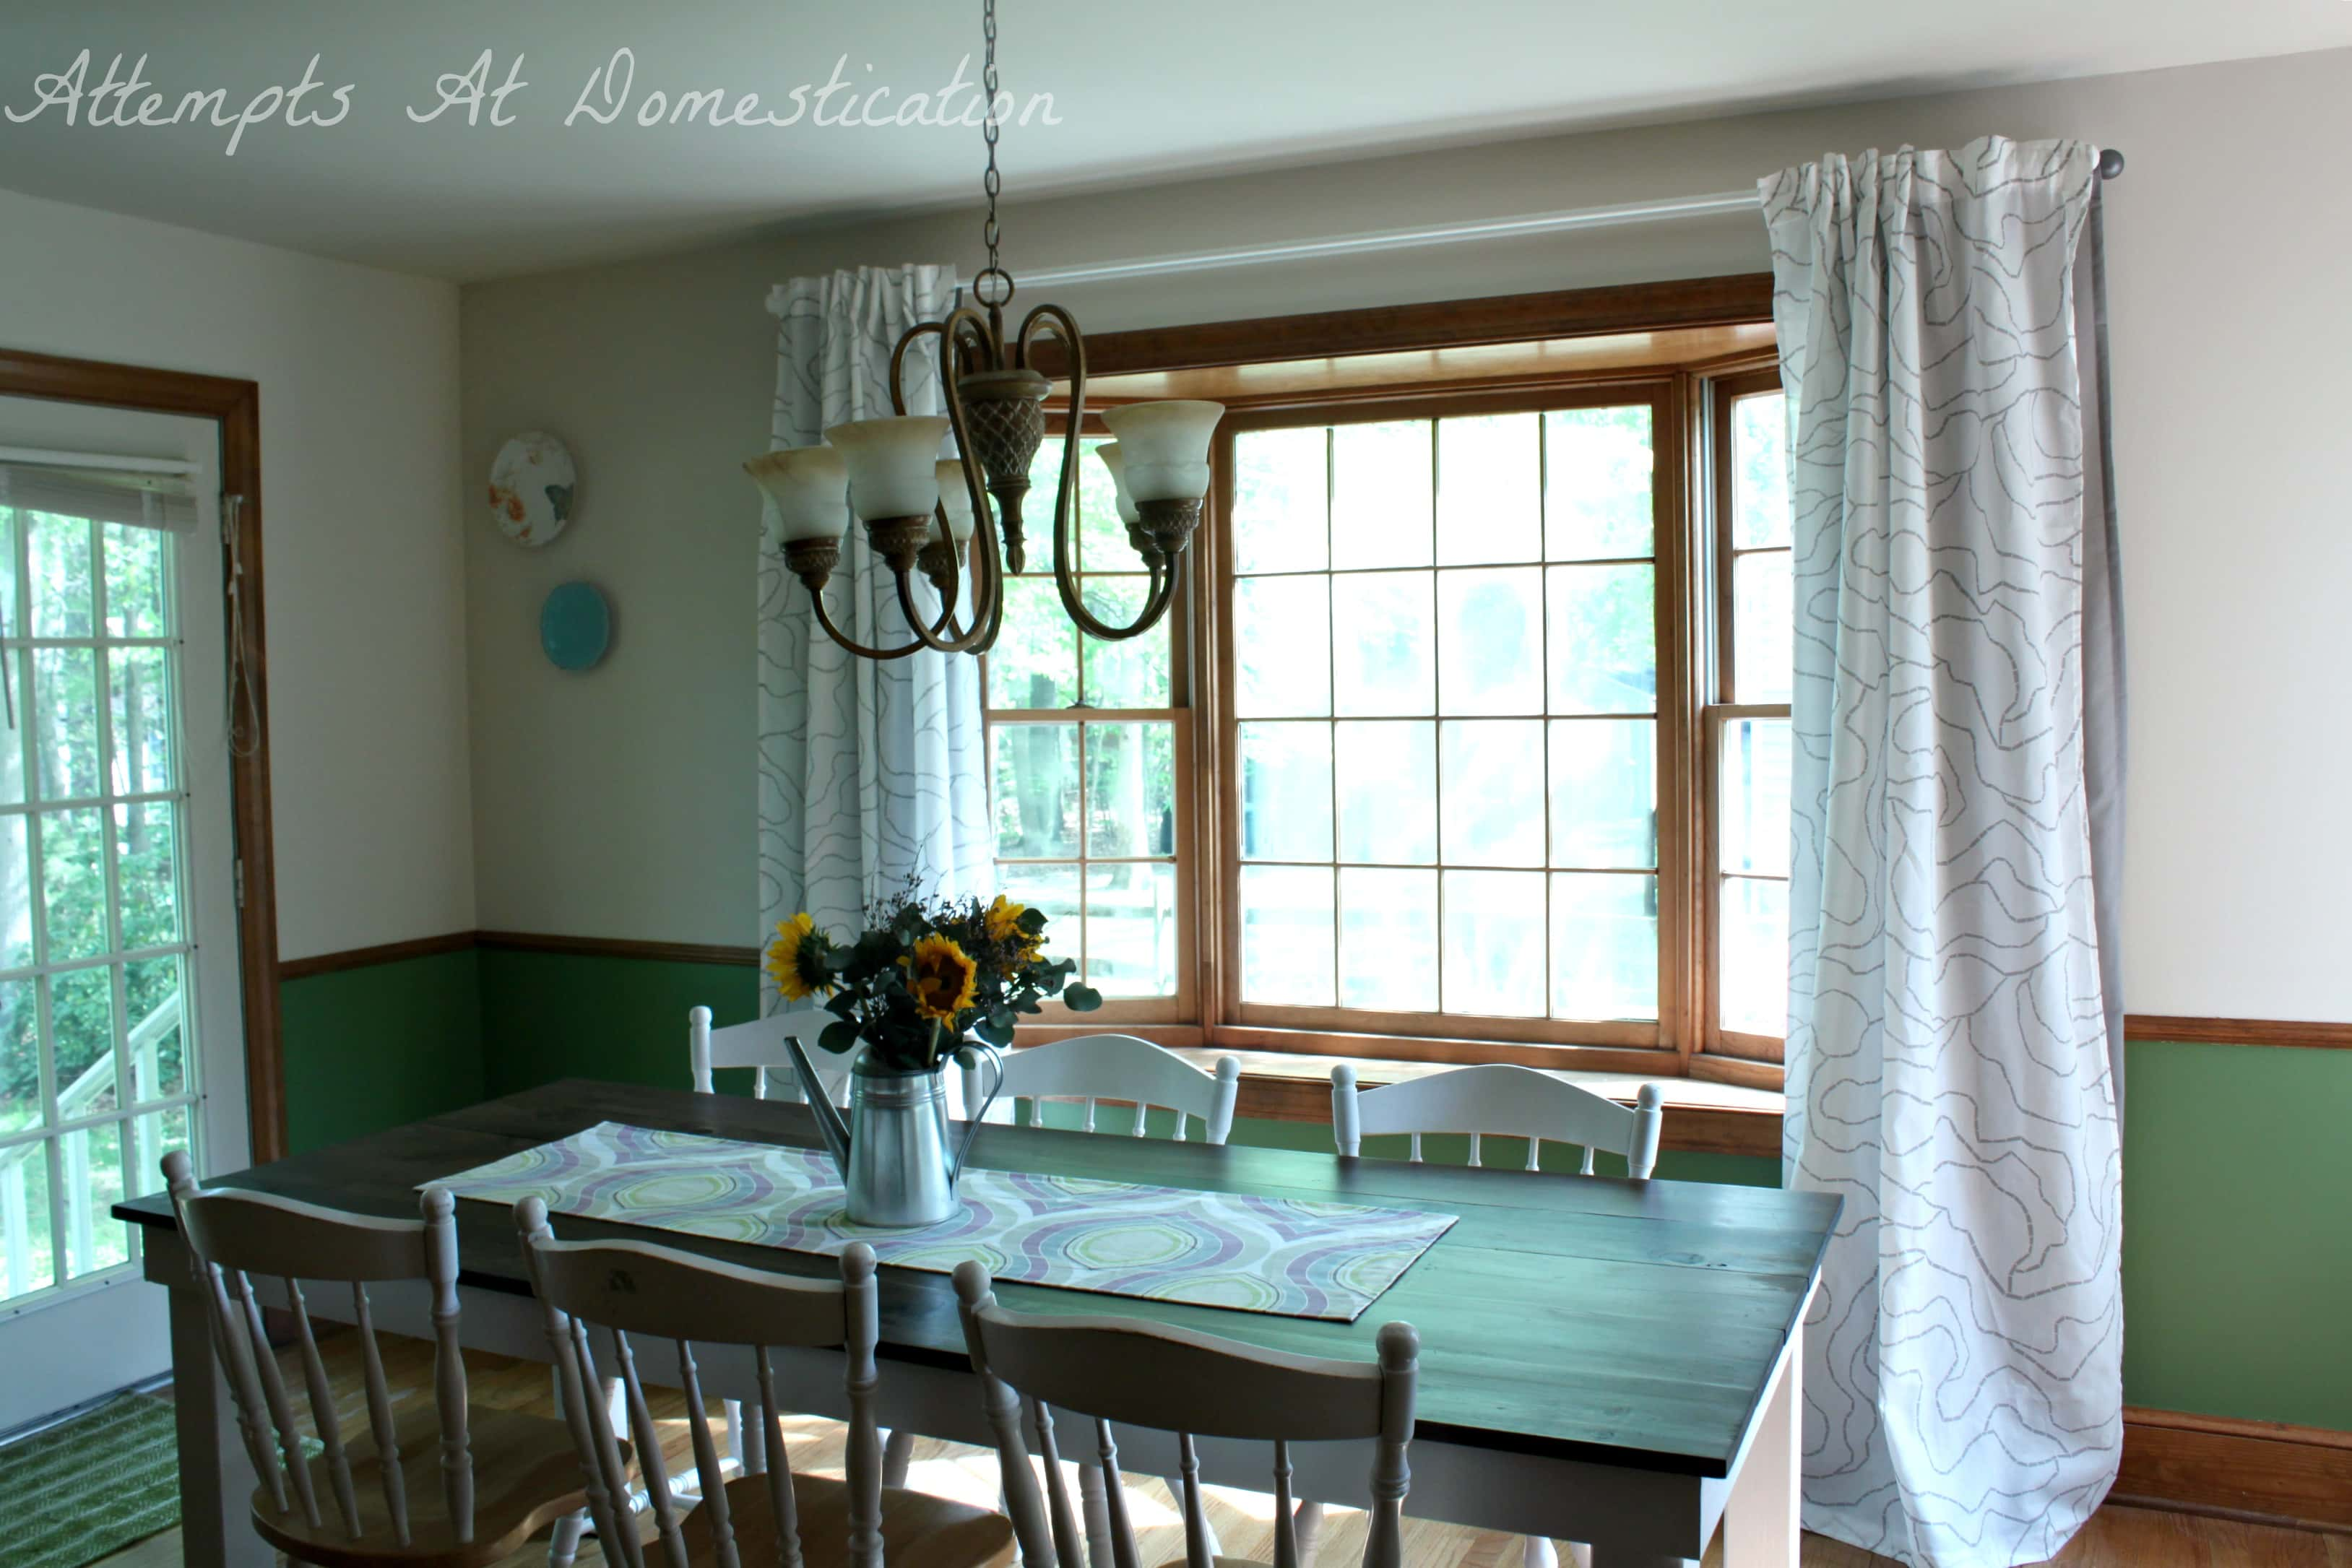 Ikea dining room 2013 - Ikea Dining Room Curtains Published December 29 2013 At 3256 2171 In